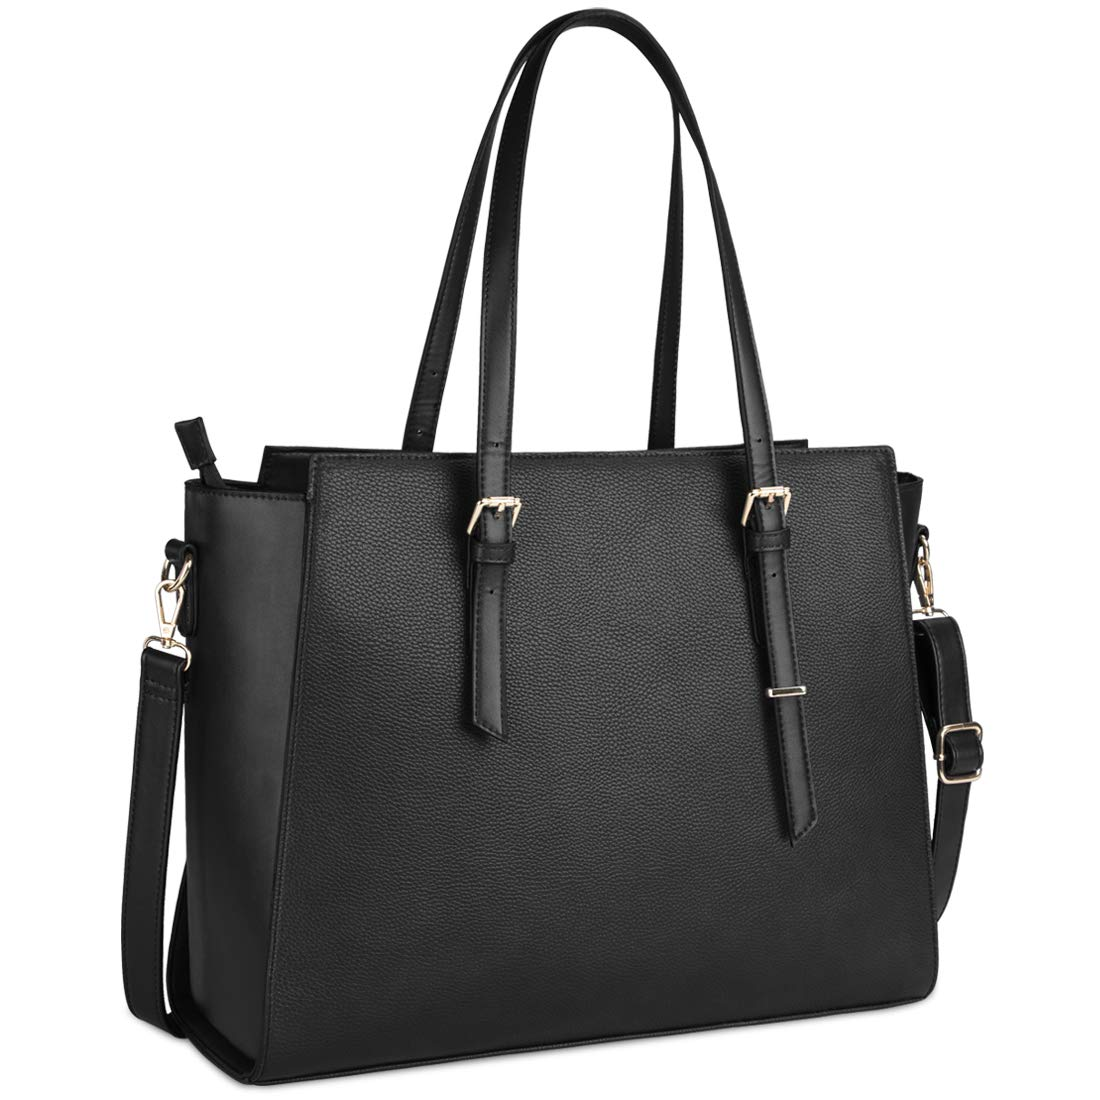 Laptop Bag for Women 15.6 Inch Waterproof Laptop Tote Bag Large Leather Computer Briefcase Womens Business Professional Office Work Bag Lightweight Shoulder Handbag,Black by NEWHEY